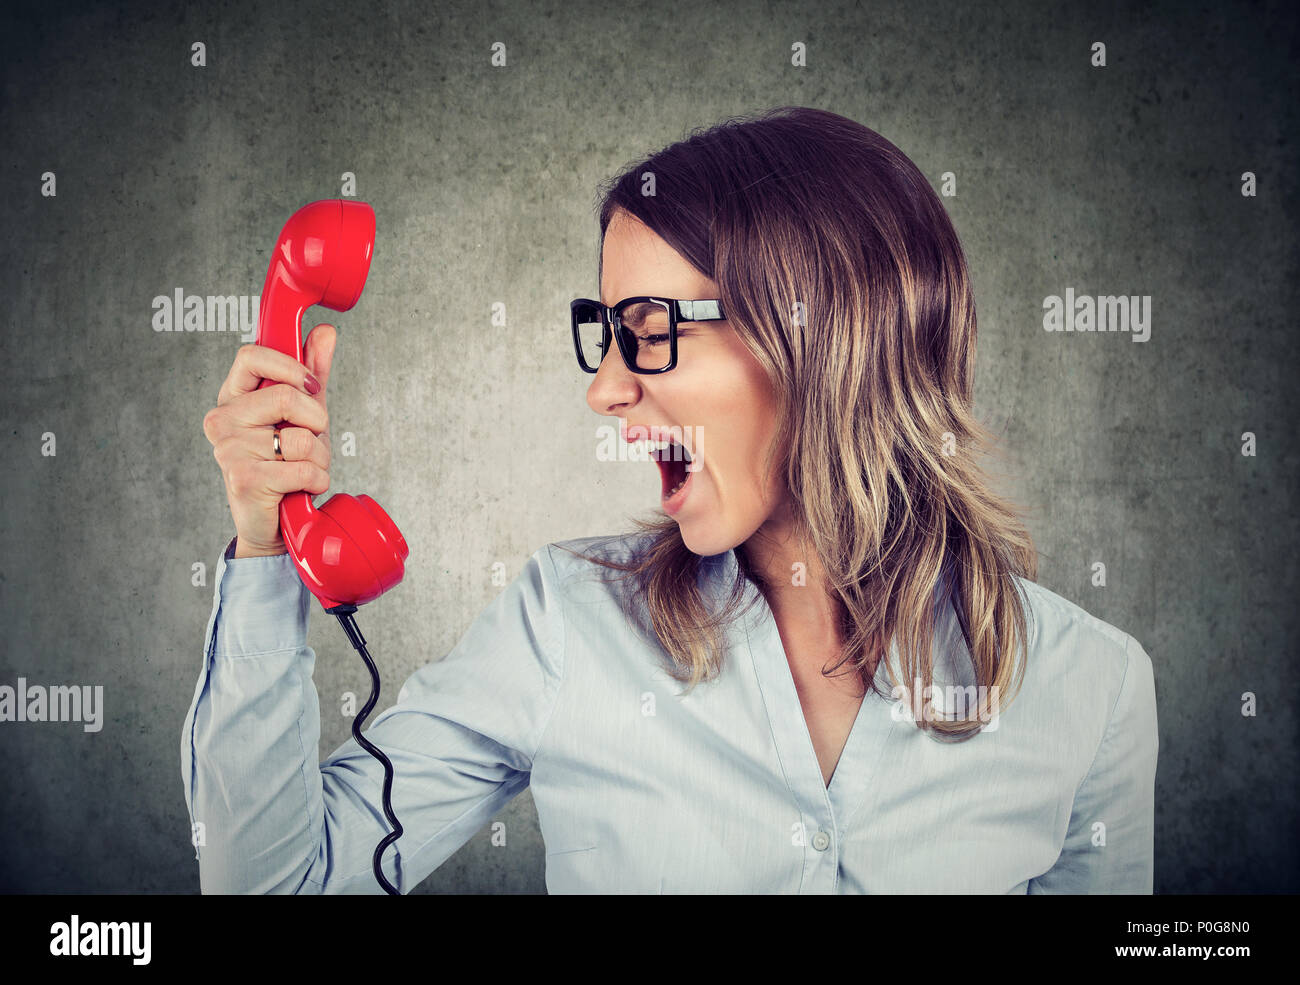 Portrait of a young angry business woman yelling at the red phone - Stock Image